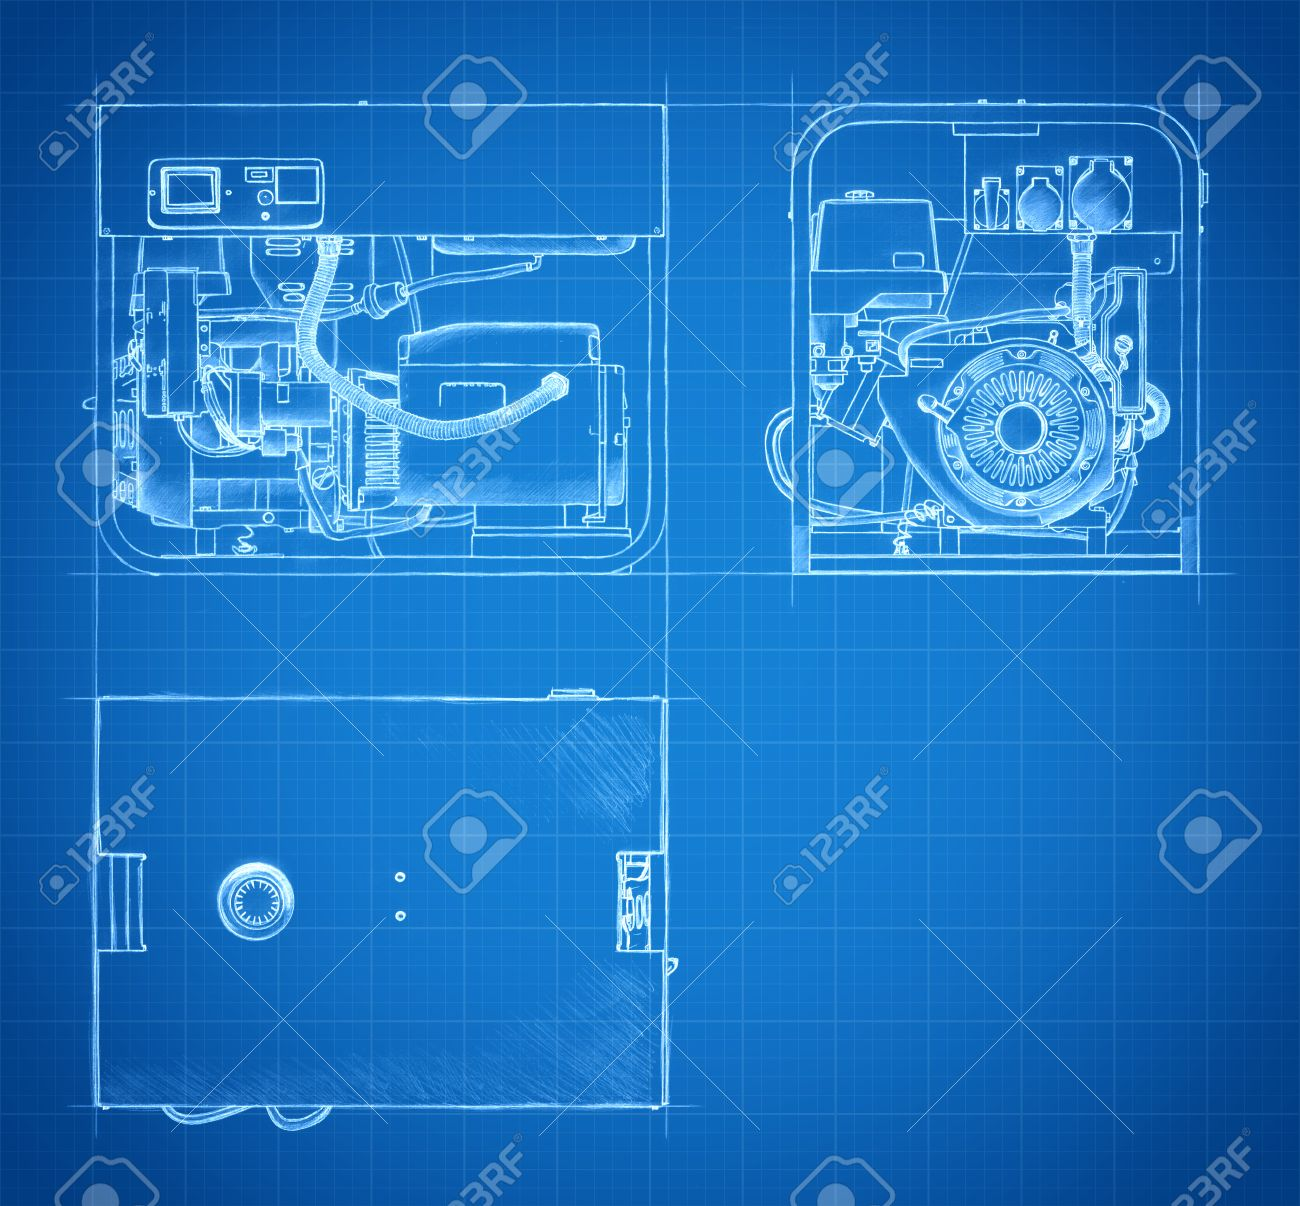 Blueprint of gasoline generator set engineering drawings and stock blueprint of gasoline generator set engineering drawings and sketches stock photo 34527436 malvernweather Gallery